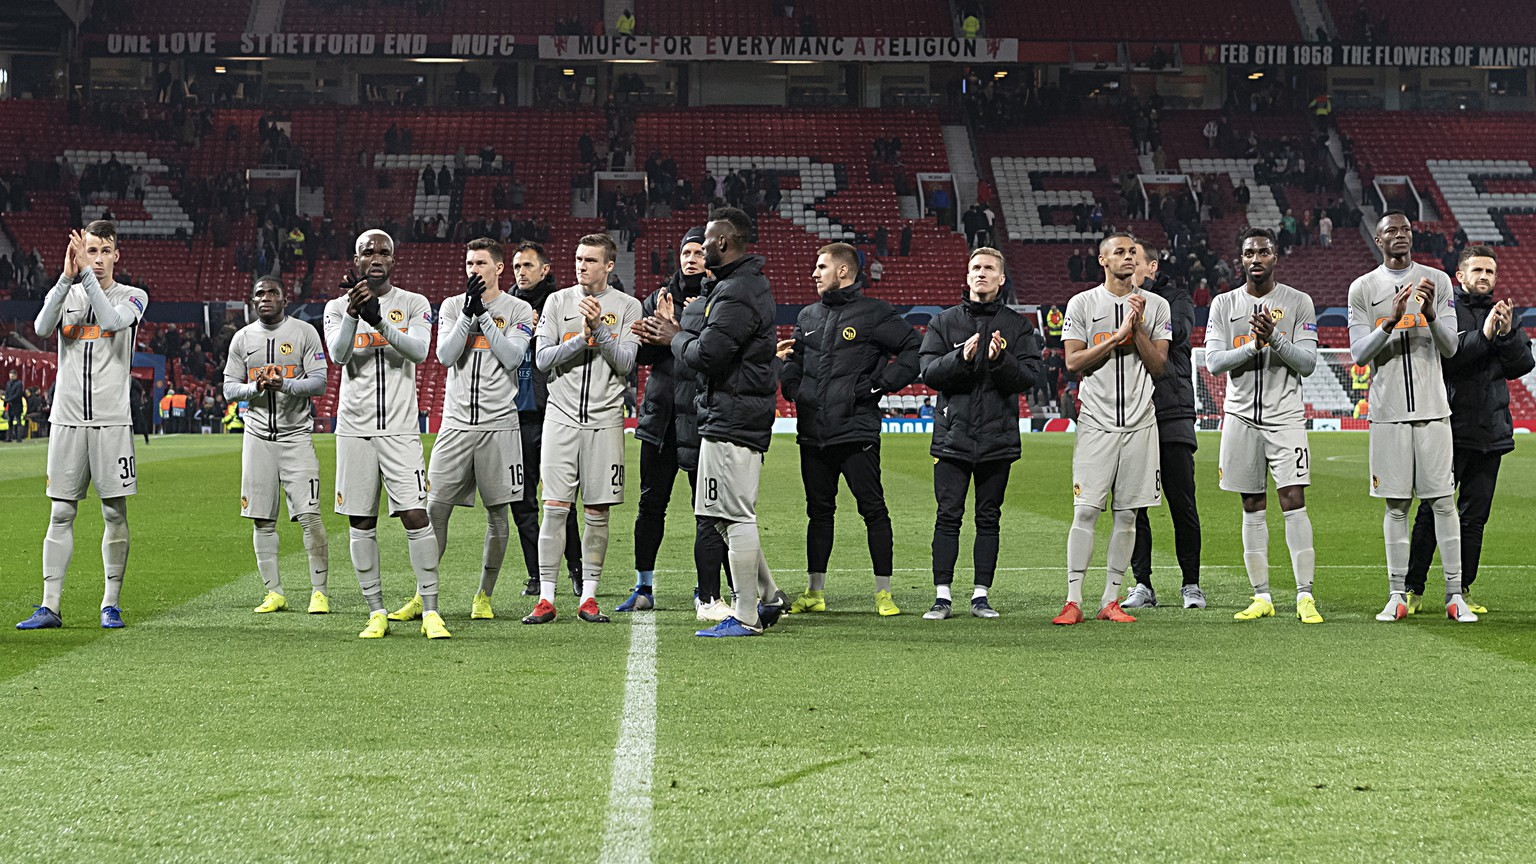 Young Boys' players thank the fans after the UEFA Champions League Group H matchday 5 soccer match between England's Manchester United FC and Switzerland's BSC Young Boys in the Old Trafford stadium in Manchester, England, on Tuesday, November 27, 2018. (KEYSTONE/Georgios Kefalas)